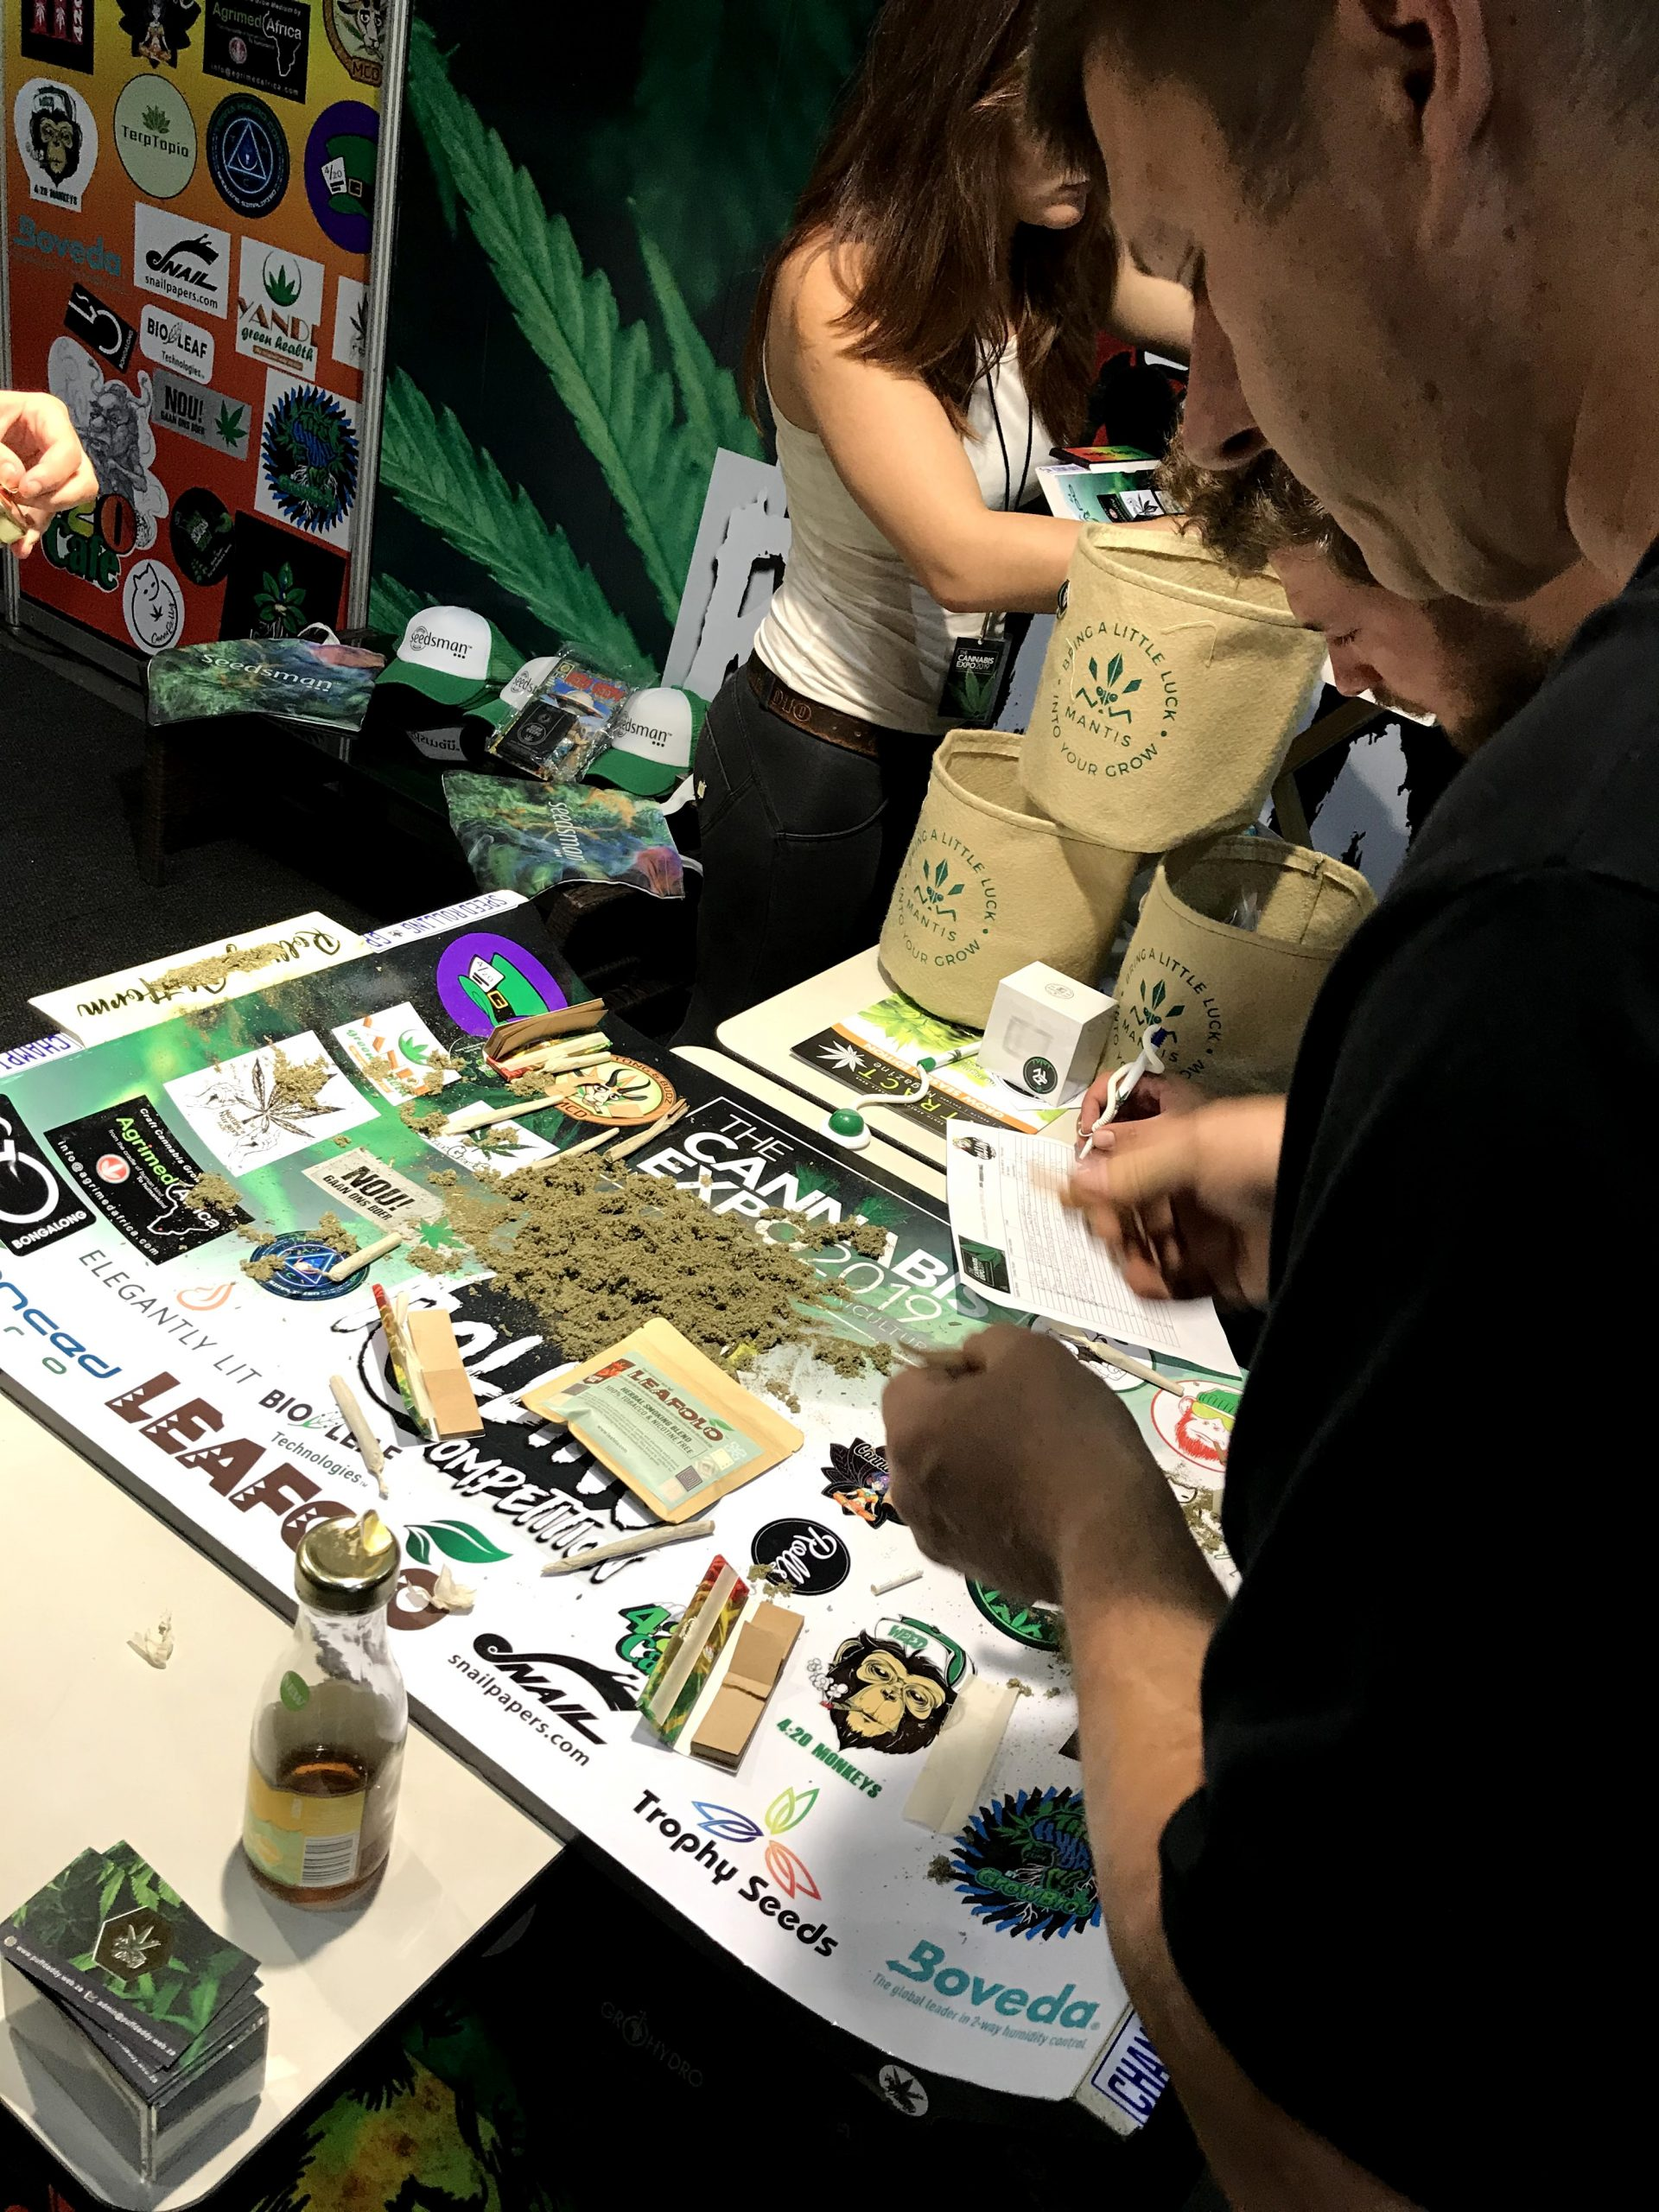 Photo taken by leaf.ng(Leafing with cannabis) at 2019 Cannabis Expo in South Africa